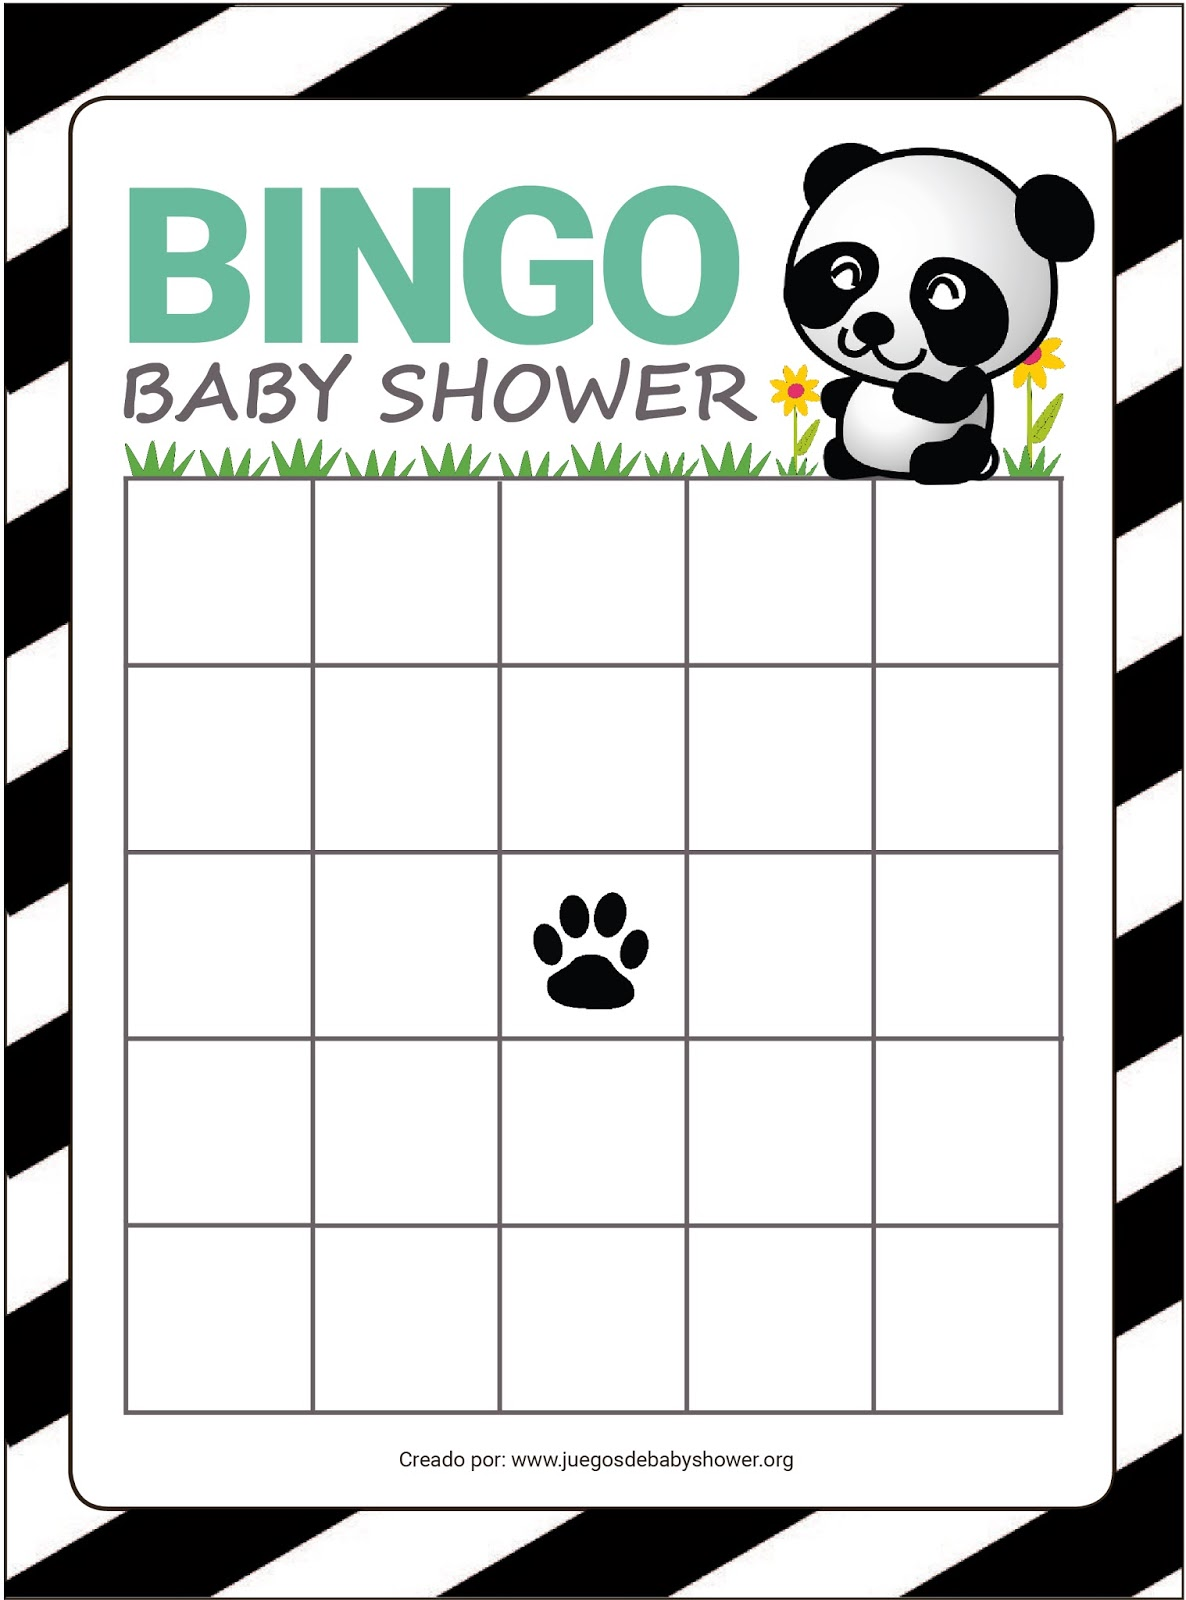 Suficiente Bingo para Baby Shower | Juegos de Baby Shower QG68